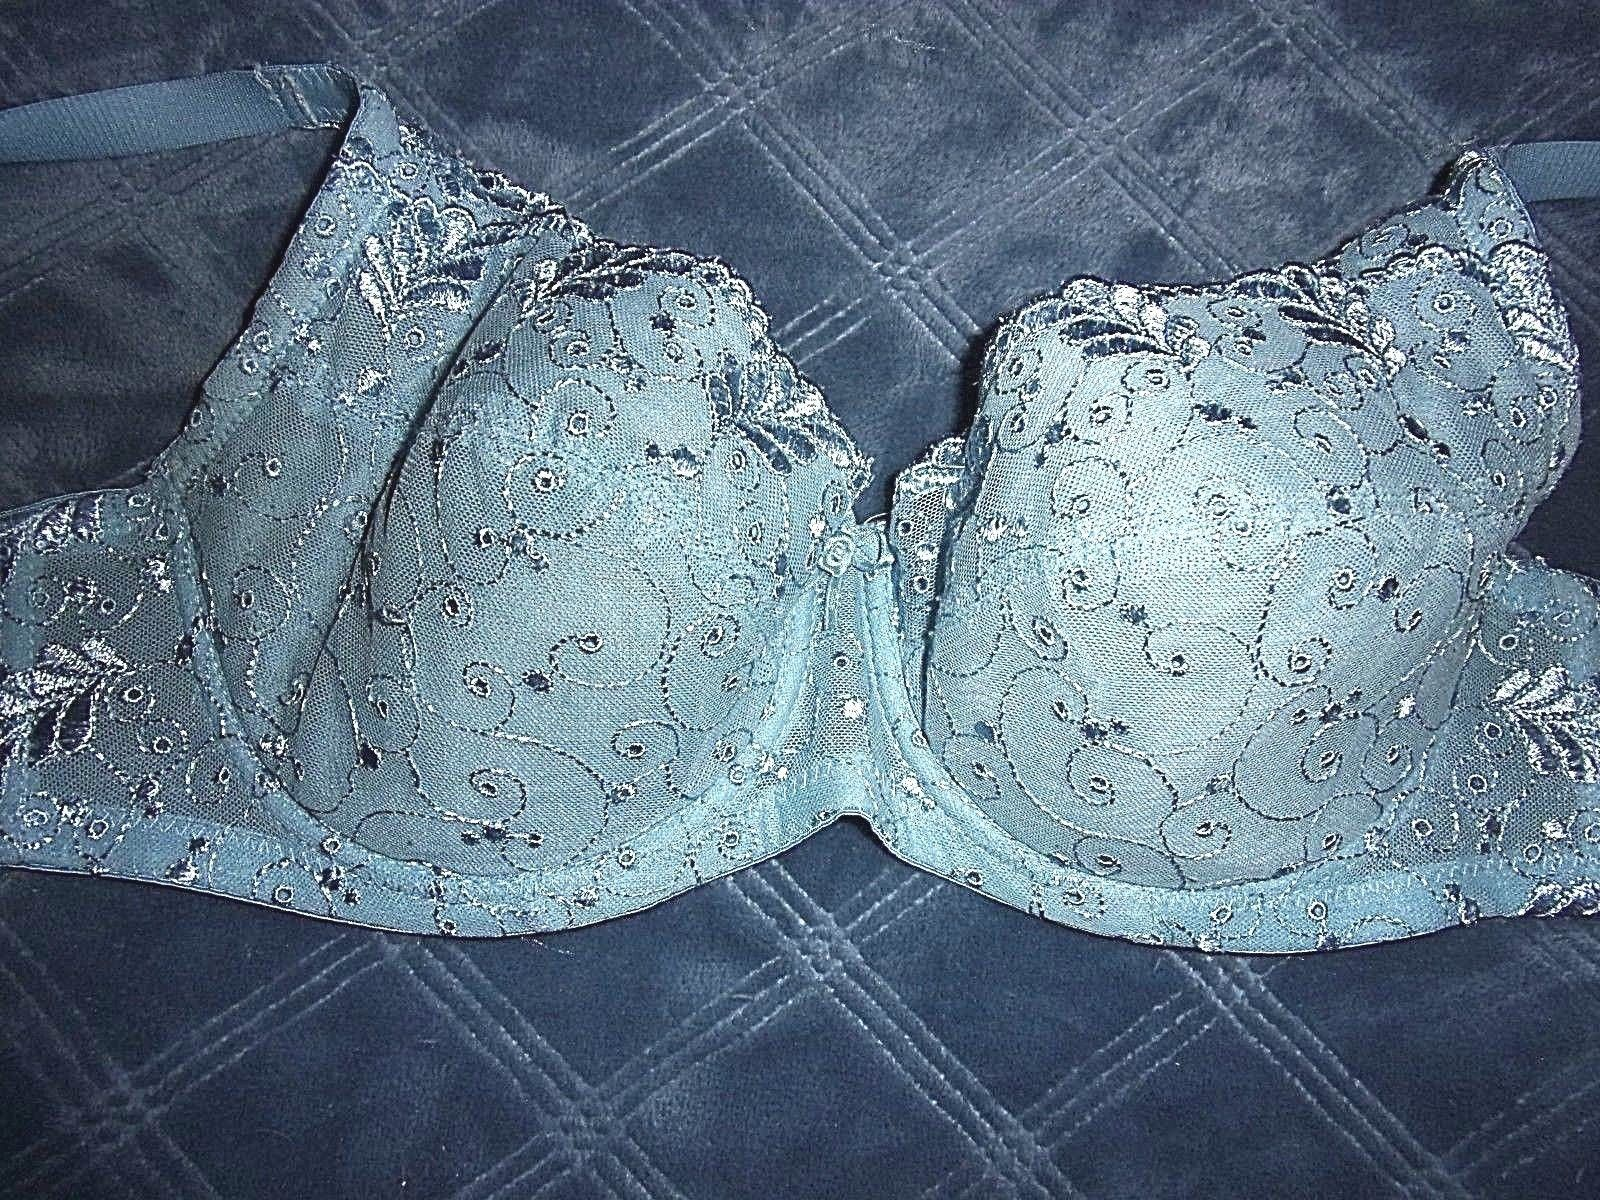 888cd23fd8e15 57. 57. Previous. 40C Q-T Intimates Embroidered Light Padded Underwire Full  Coverage Bra